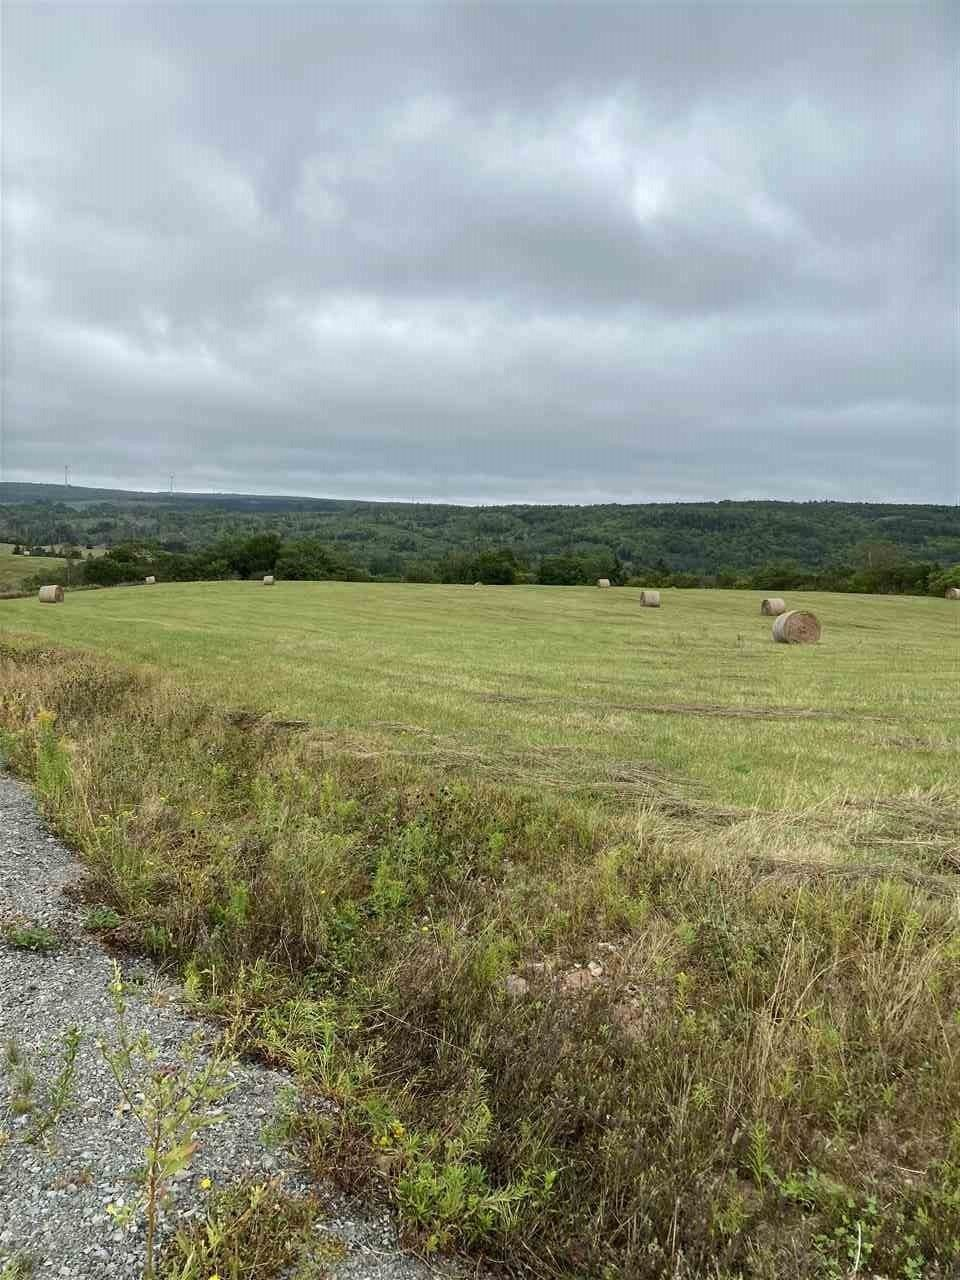 Main Photo: Lots 1, 2, 3 12 Vincent Loop in North Grant: 302-Antigonish County Vacant Land for sale (Highland Region)  : MLS®# 202116003